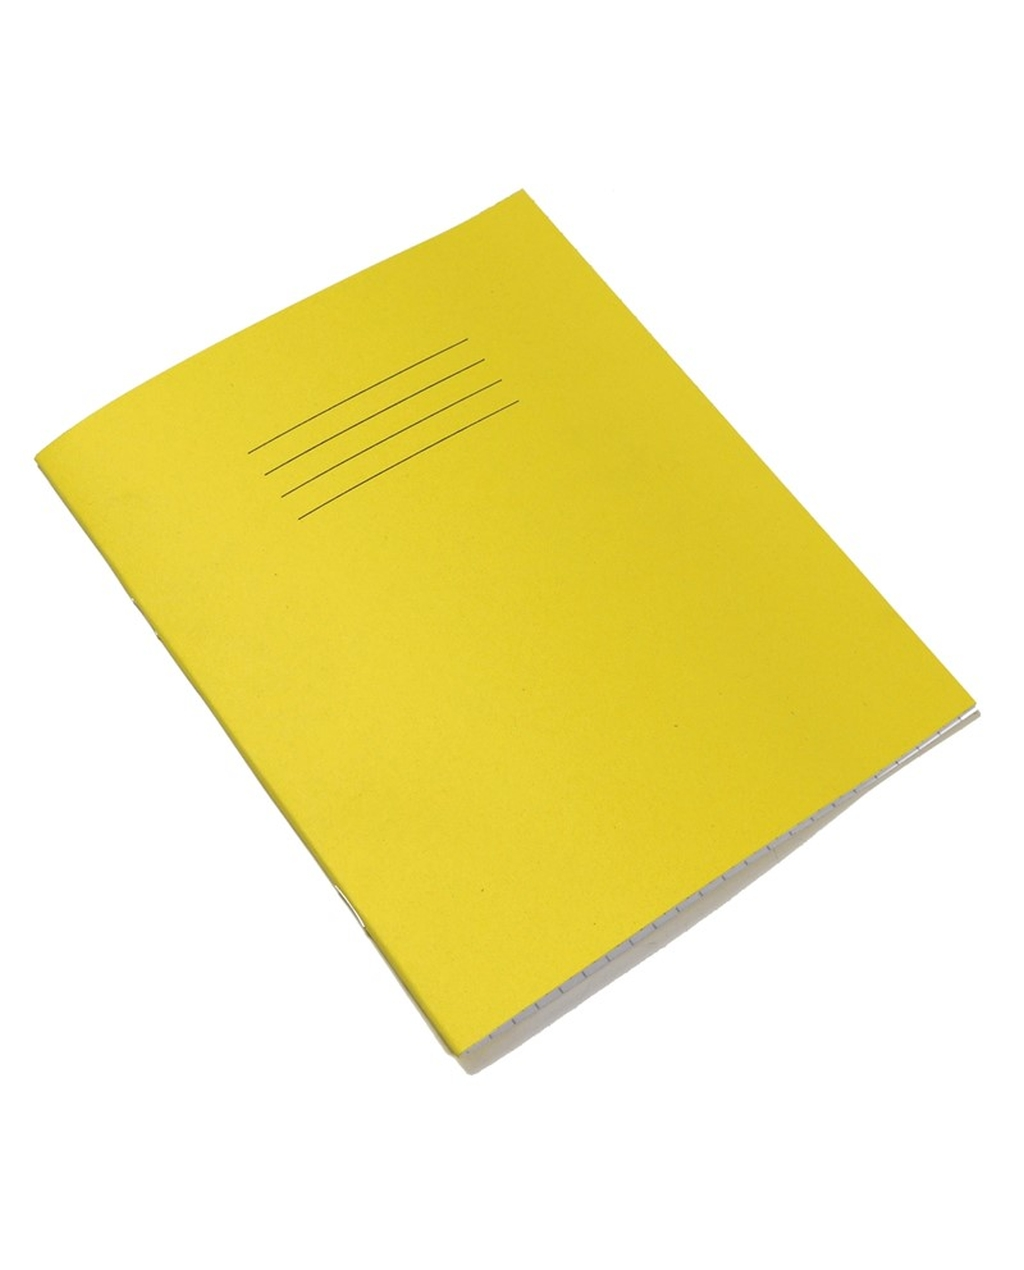 Exercise Book 8 x 6.5 (203 x 165mm) Yellow Cover 8mm Ruled & Margin 48 Pages